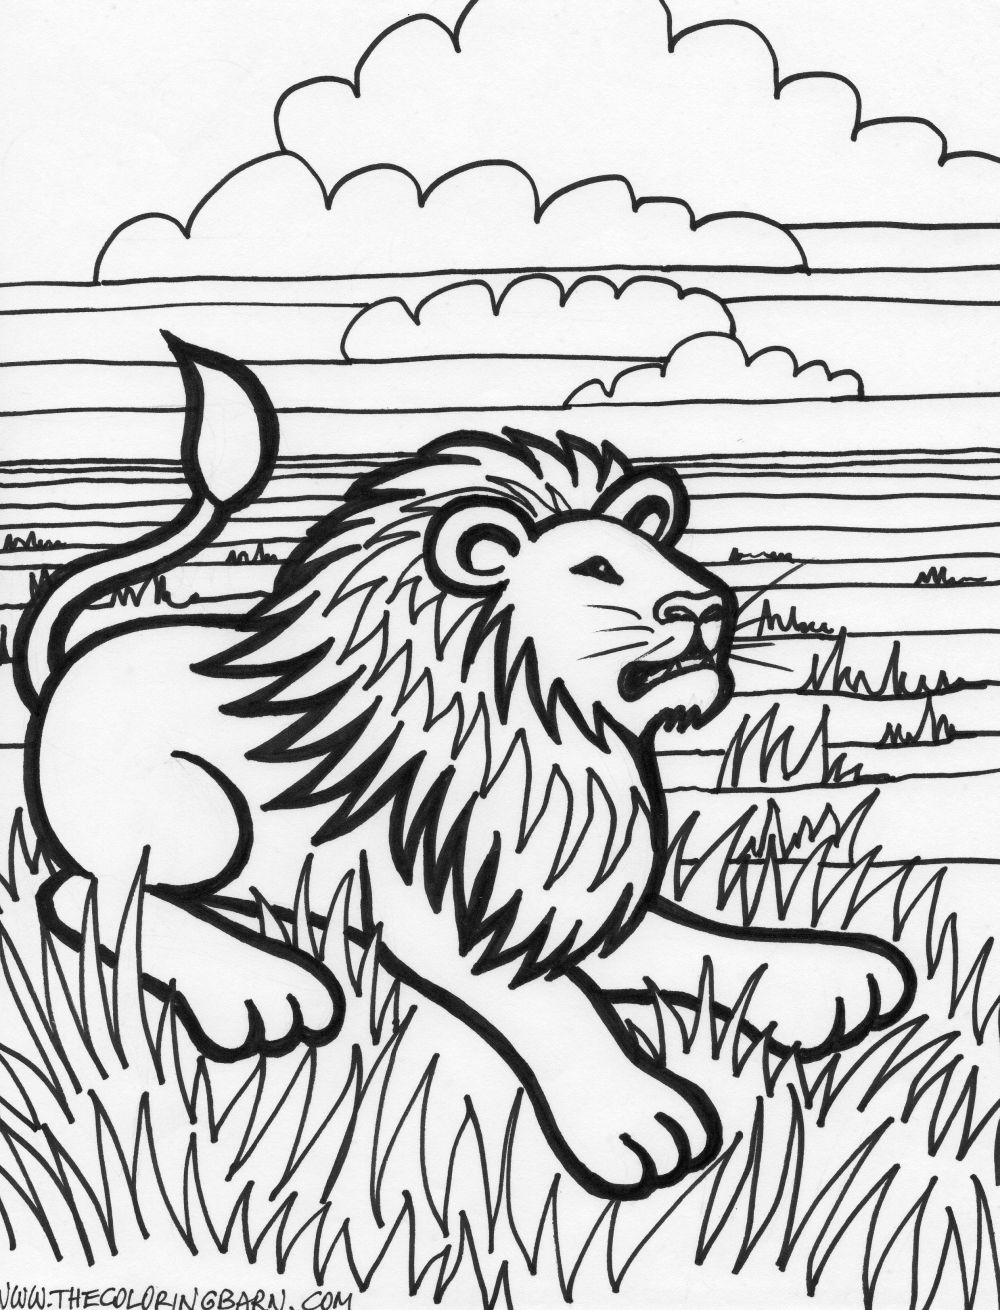 Tiger coloring pages | Animal coloring pages | #10